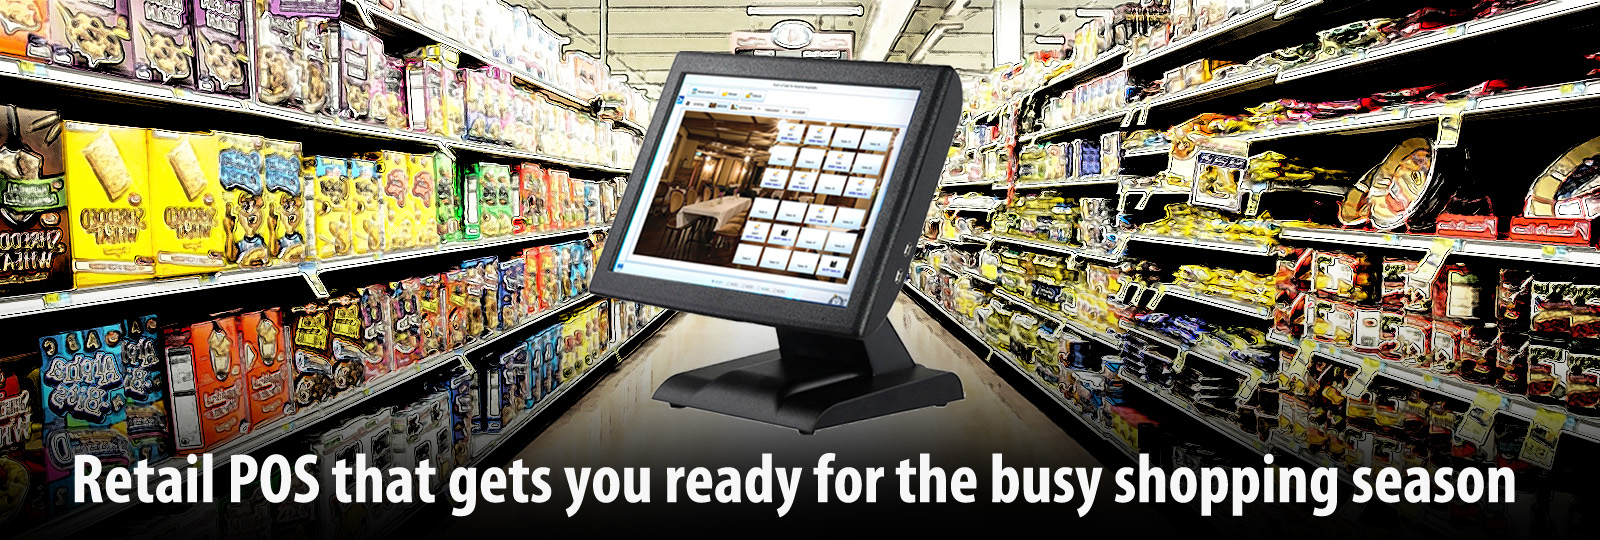 Retail POS that gets you ready for Busy Season